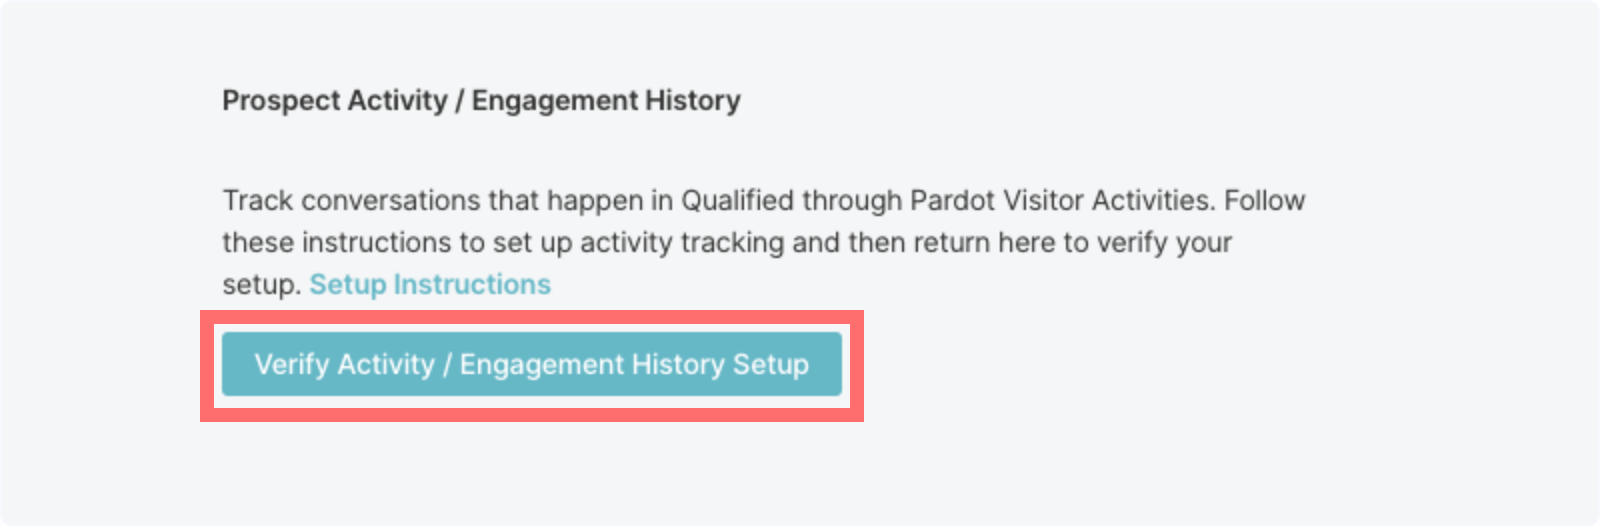 Go back to the Pardot Connection Settings in Qualified to verify your setup